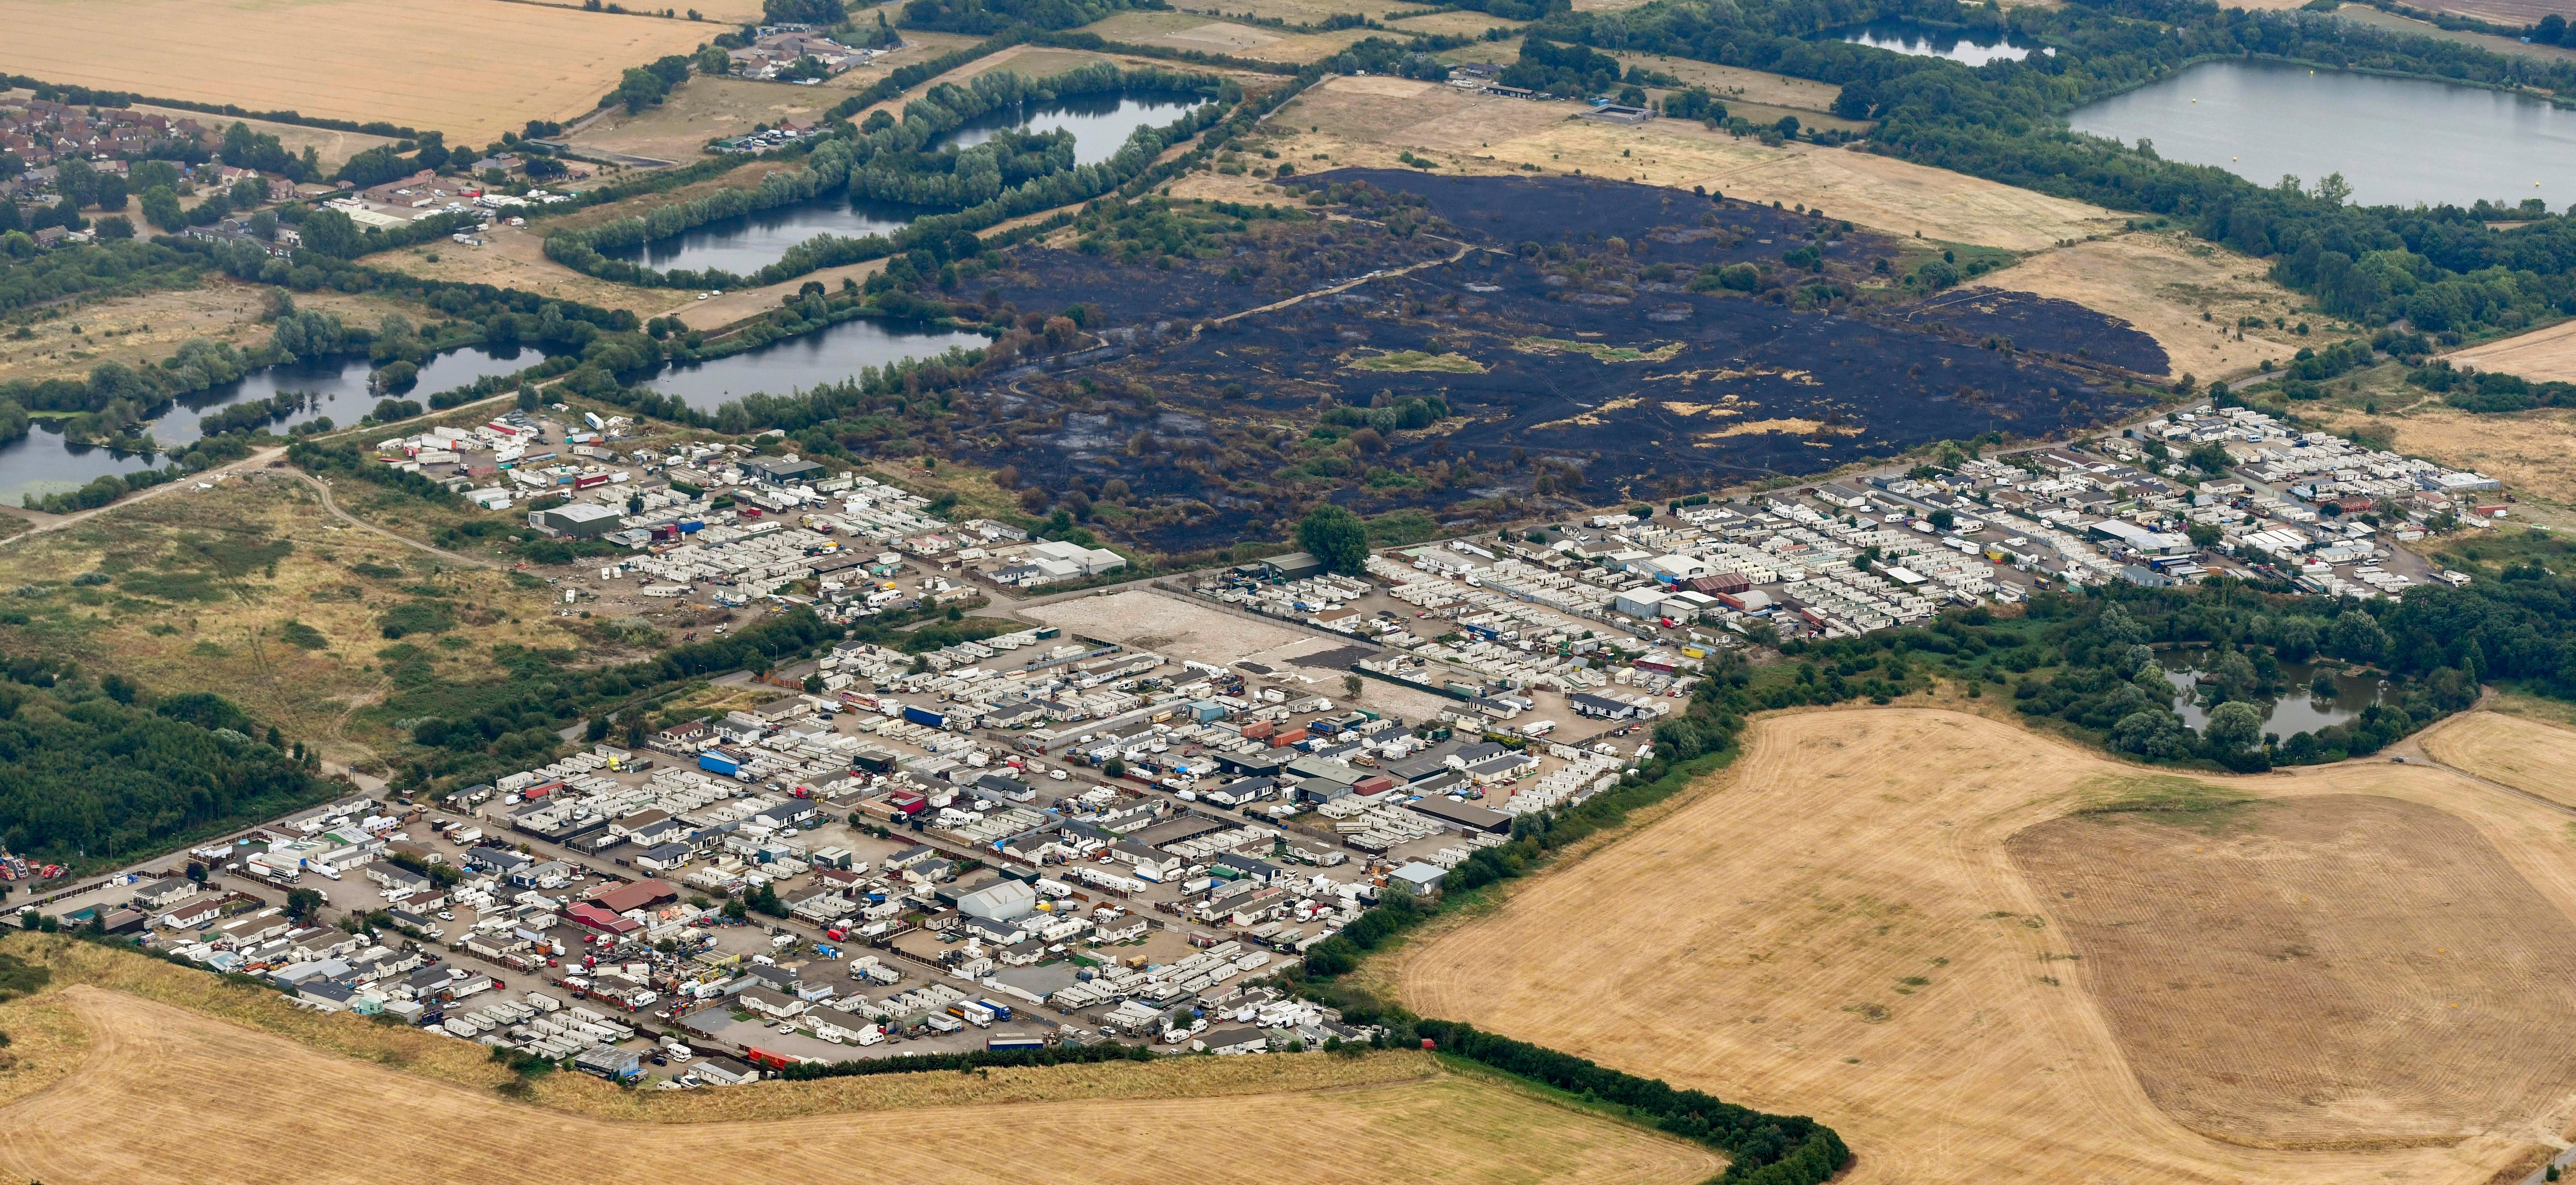 Sprawling Essex traveller site has become Europe's largest with more than 1,000 people camped there